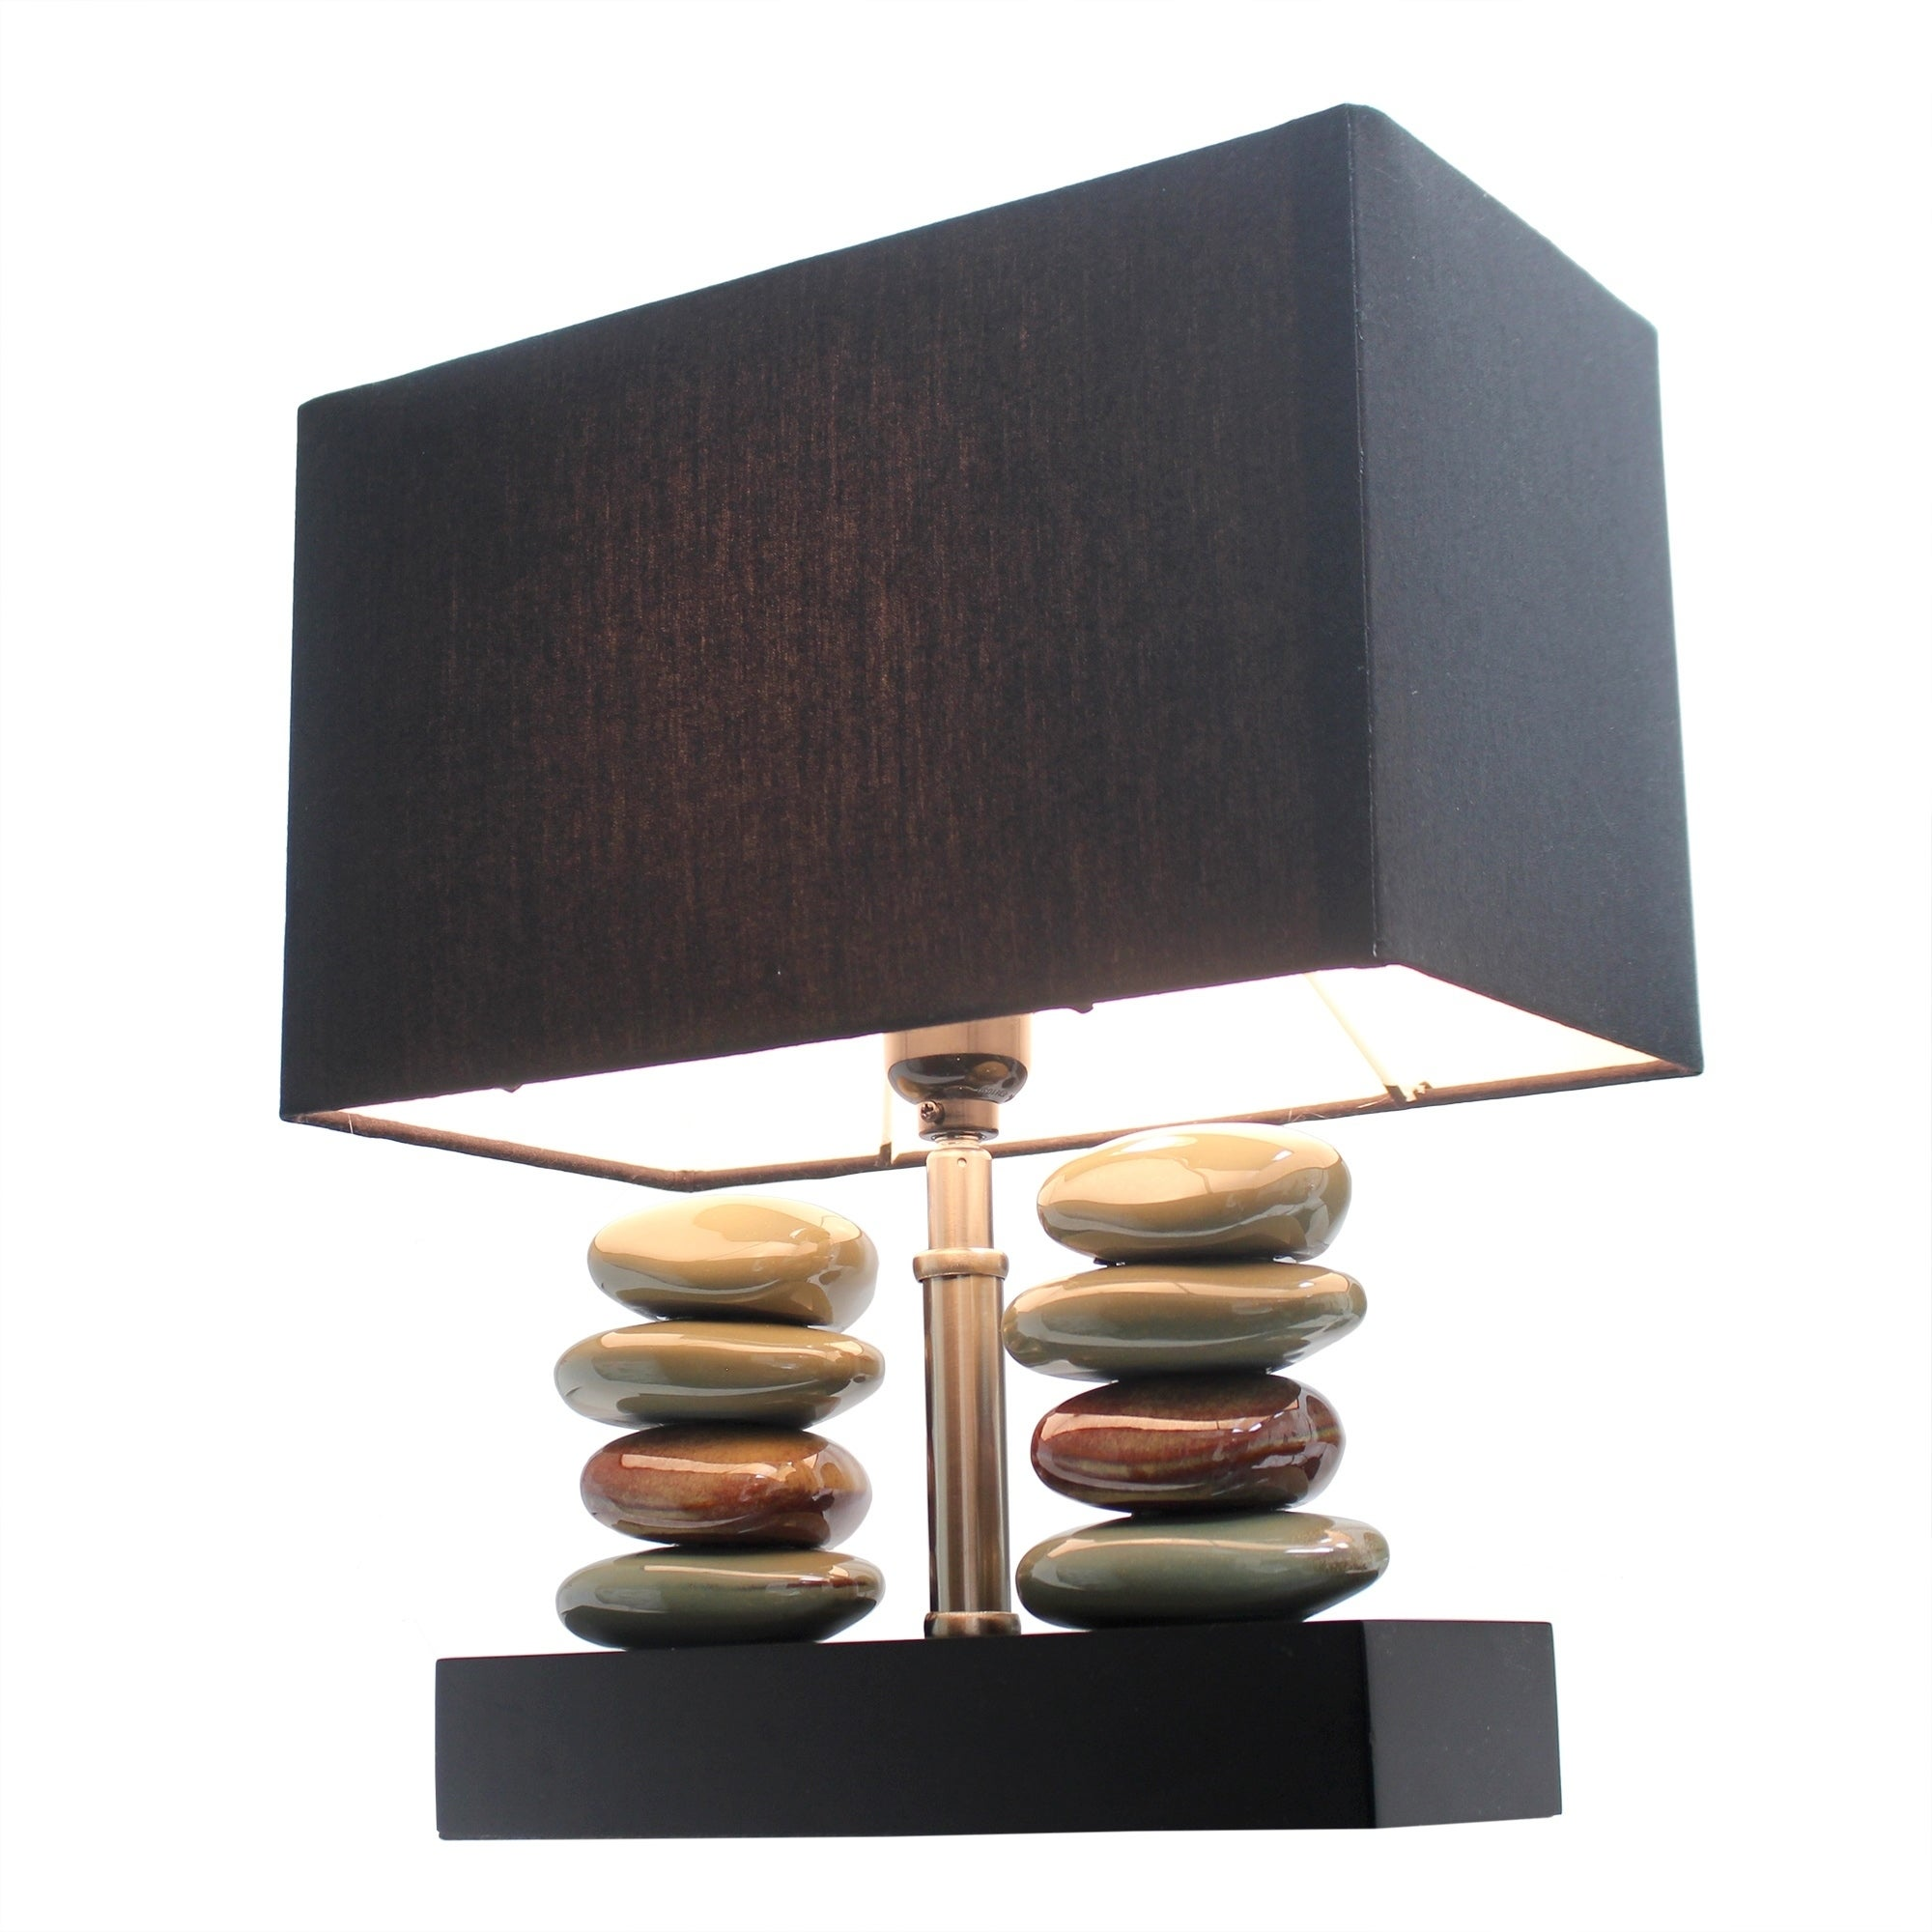 Shop elegant designs rectangular dual stacked stone ceramic table shop elegant designs rectangular dual stacked stone ceramic table lamp and black shade on sale free shipping today overstock 9428241 mozeypictures Images